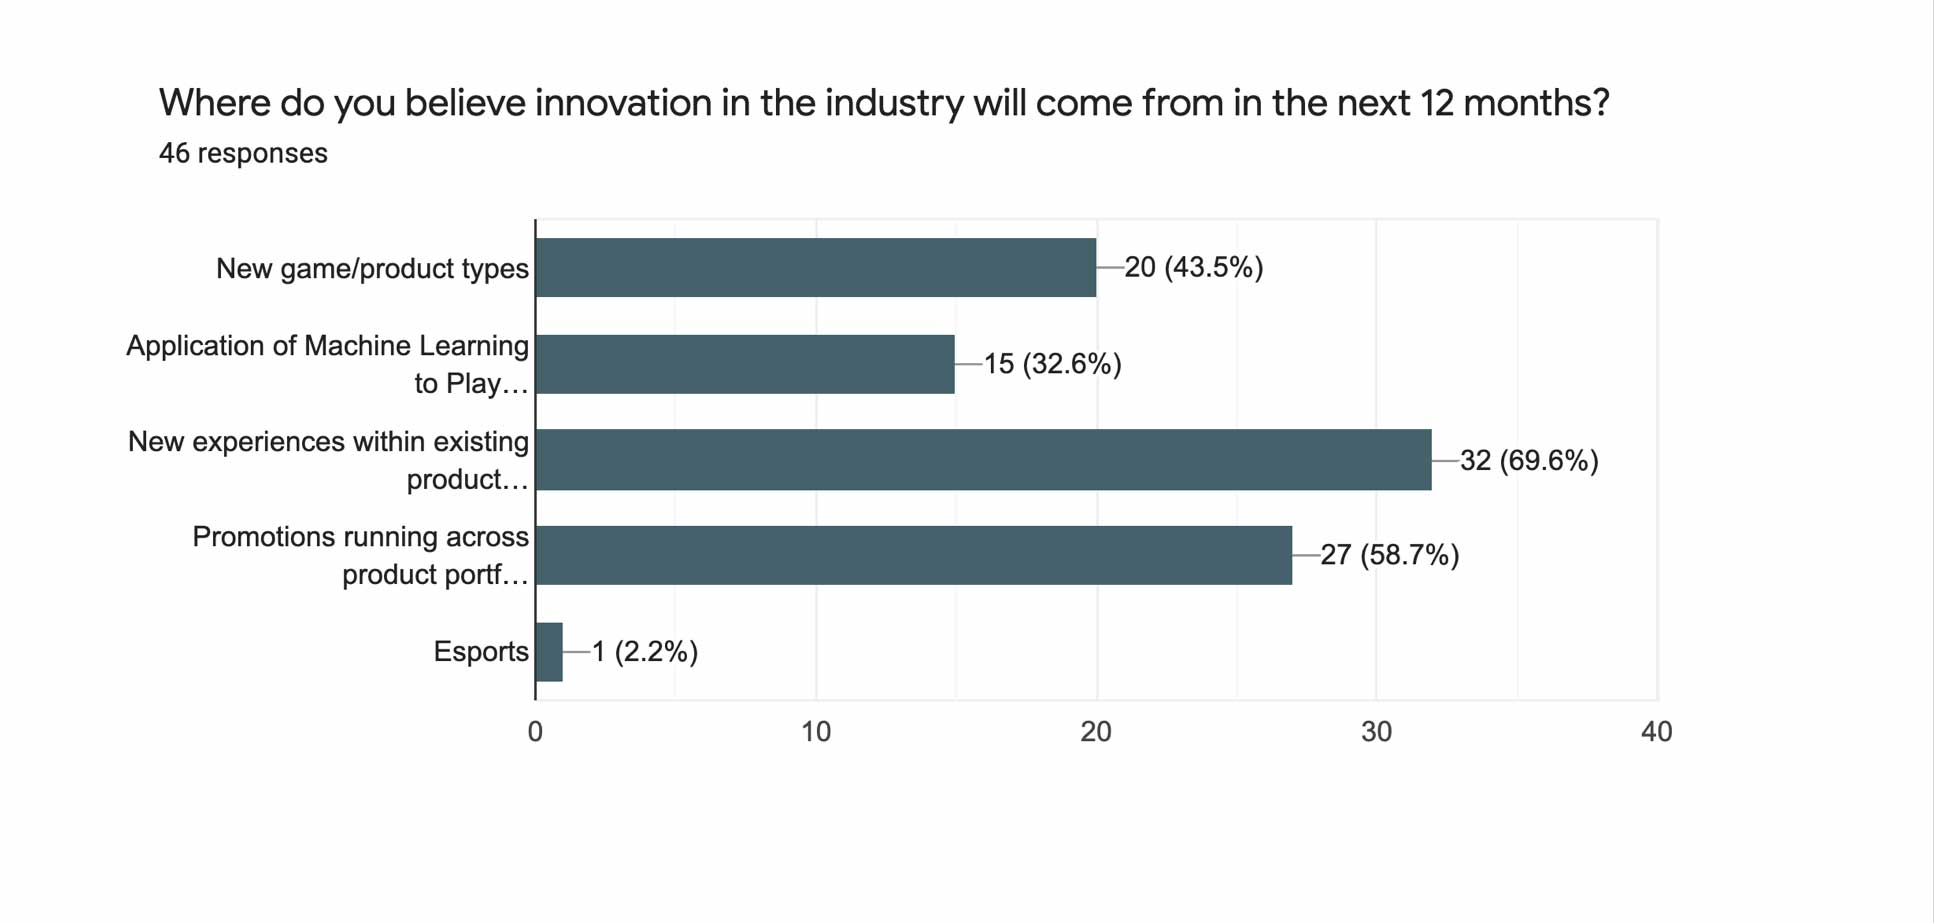 Where do you believe innovation in the industry will come from in the next 12 months?